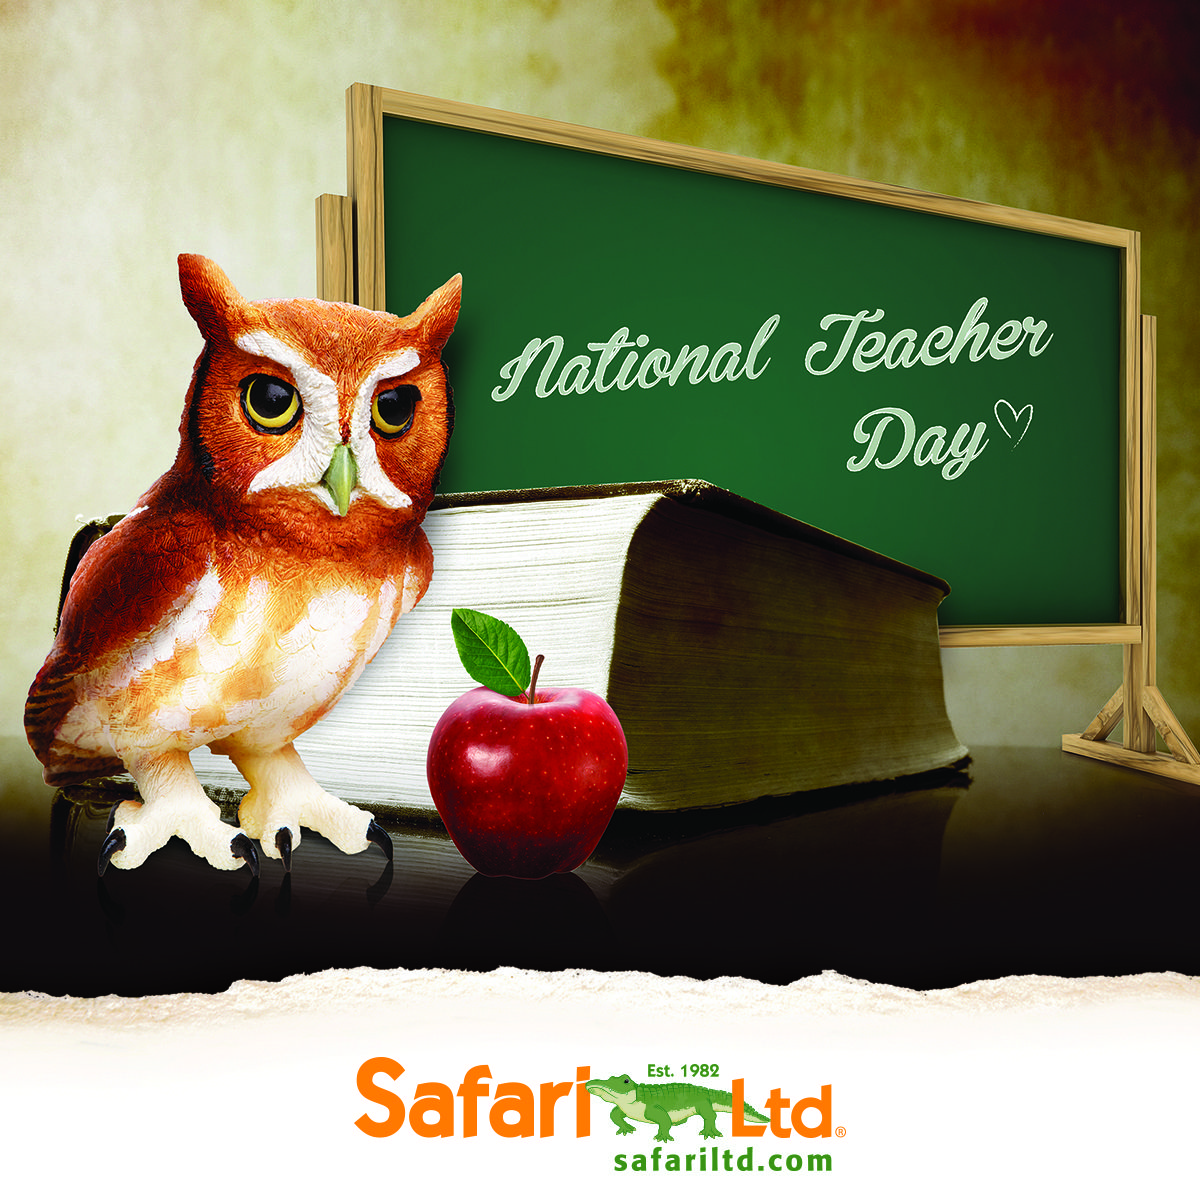 Happy National Teacher Day to all the selfless educators who put their students first! ‪#‎LoveSafari‬ ‪#‎ToysThatTeach‬